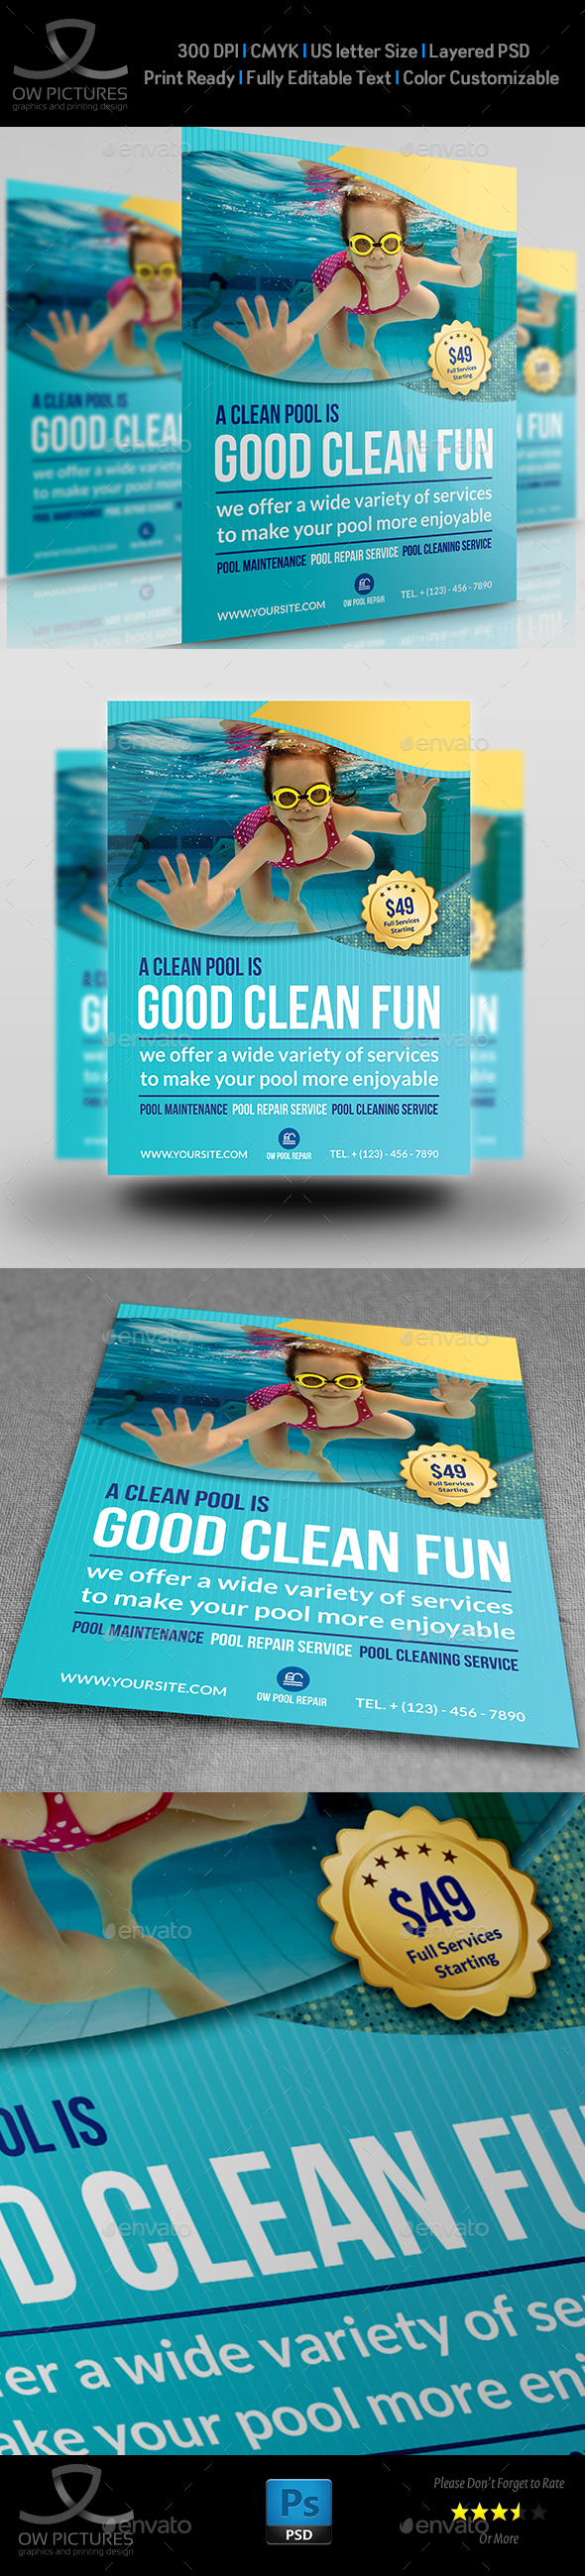 Swimming Pool Cleaning Service Flyer Template  Pool Cleaning